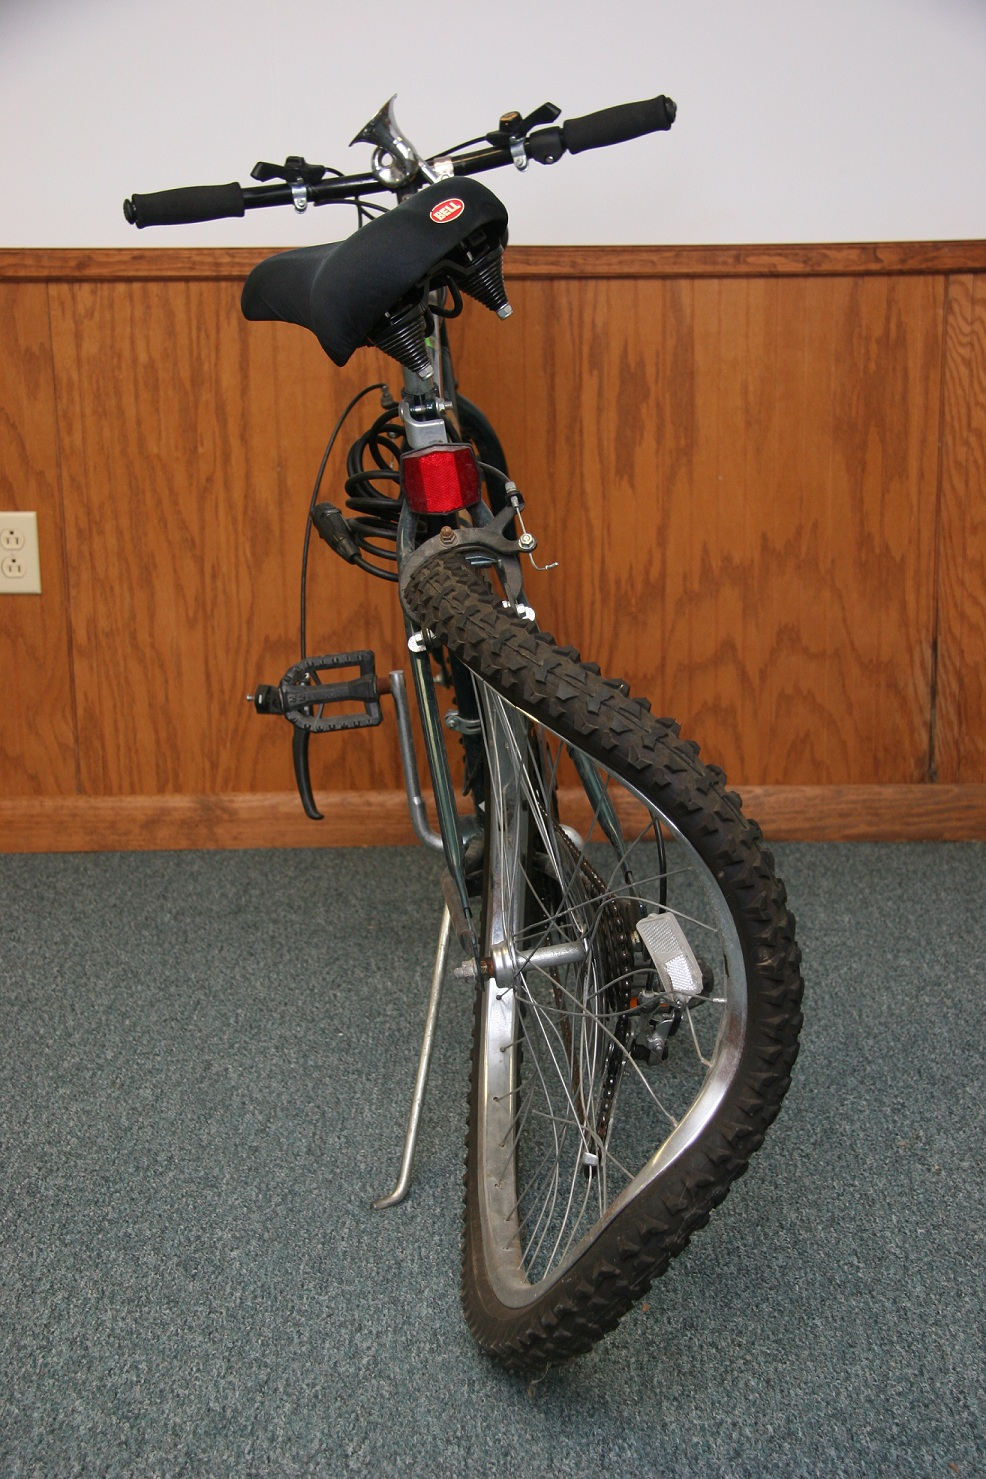 Bikes And Boards Utica Ny Schrom s bicycle on Sept